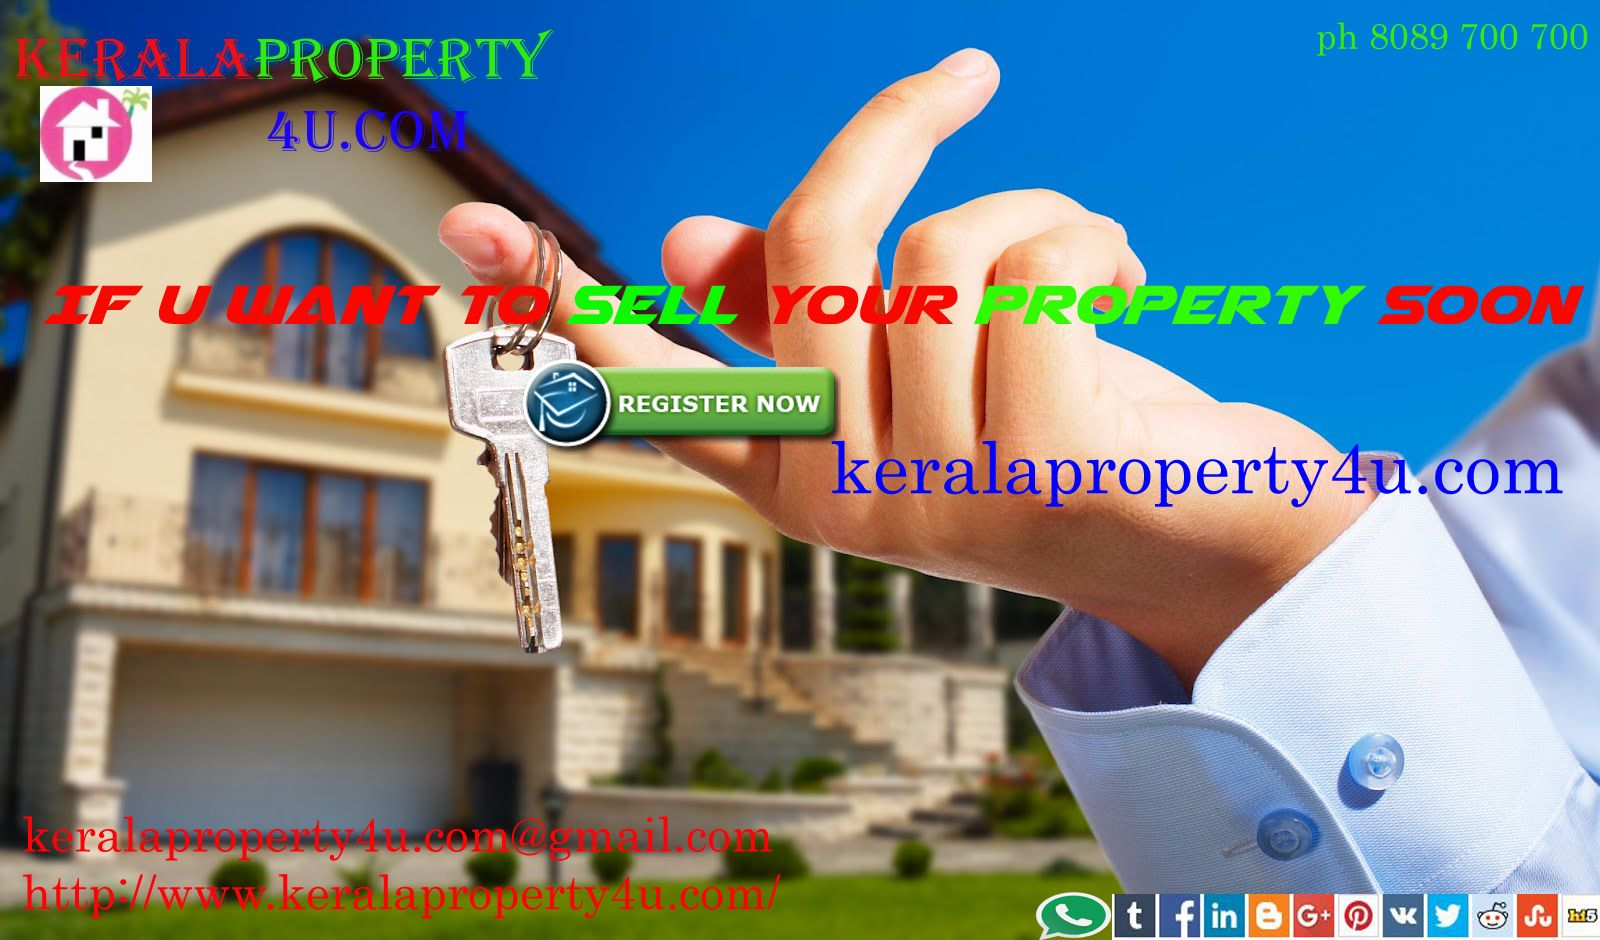 http://www.keralaproperty4u.com/index.php ph 8089 700 700